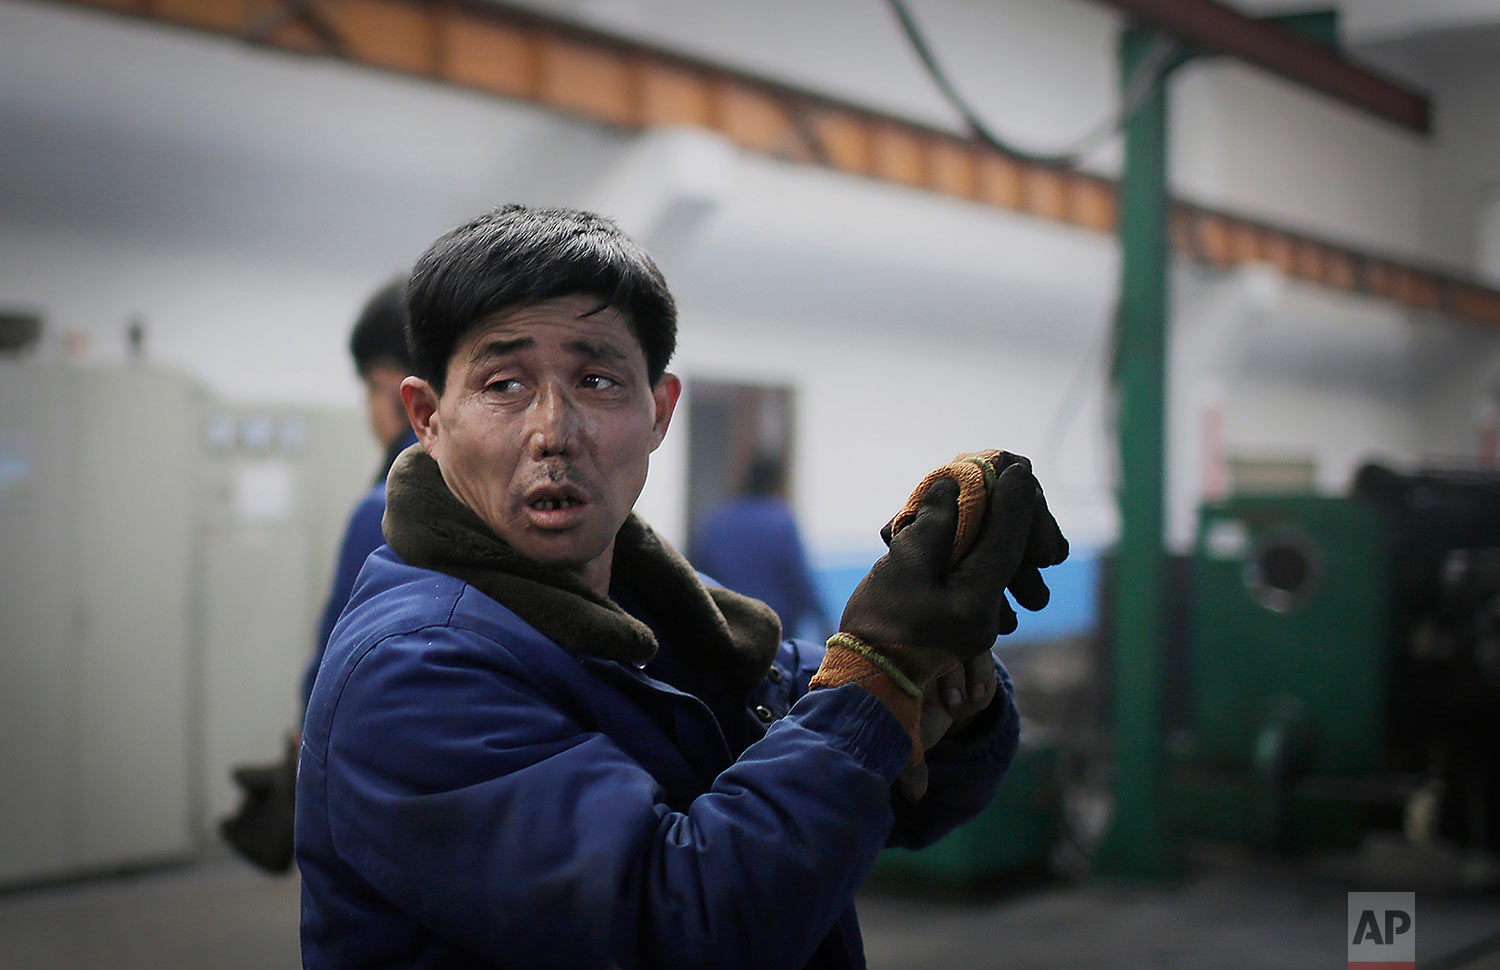 A factory worker takes off his gloves at the Pyongyang 326 Electric Wire Factory in Pyongyang, North Korea, on Jan. 10, 2017. (AP Photo/Wong Maye-E)